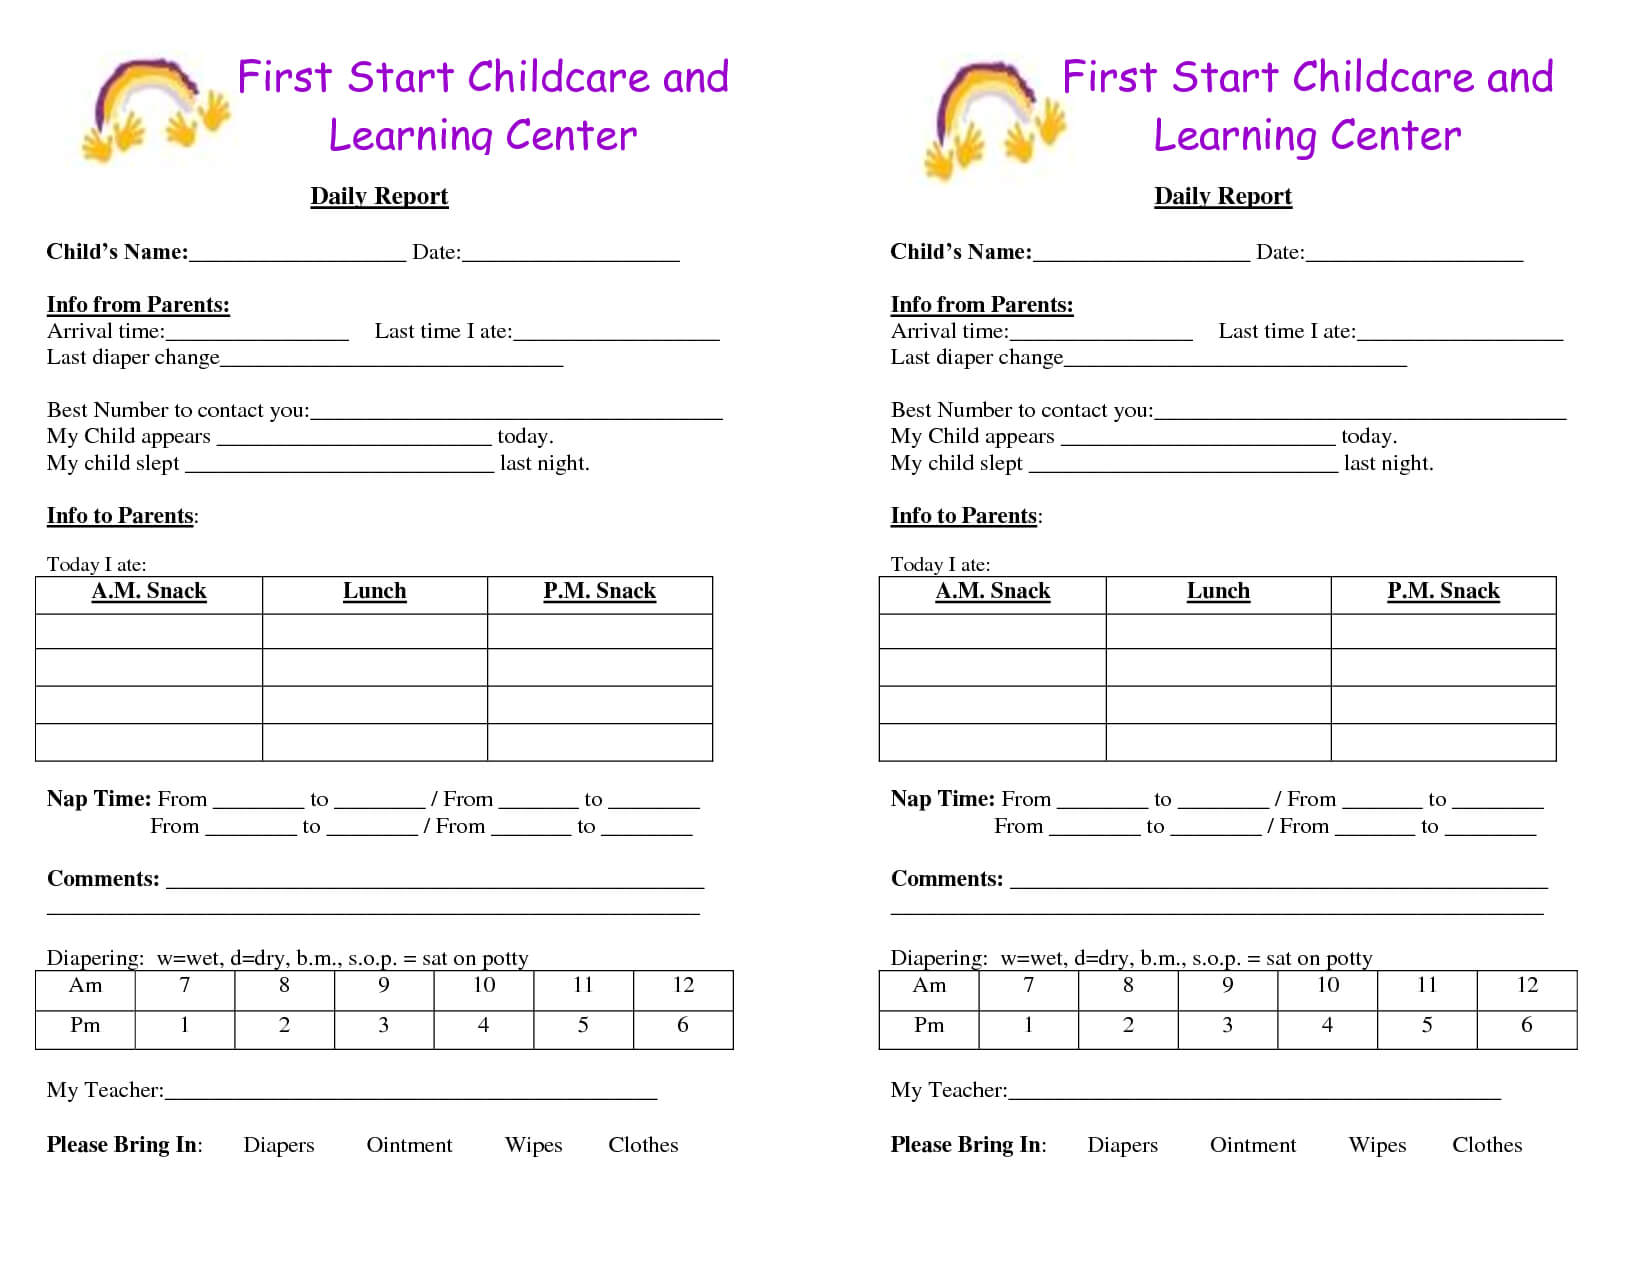 Baby Log Forms - Google Search | Infant Daily Report Inside Daycare Infant Daily Report Template